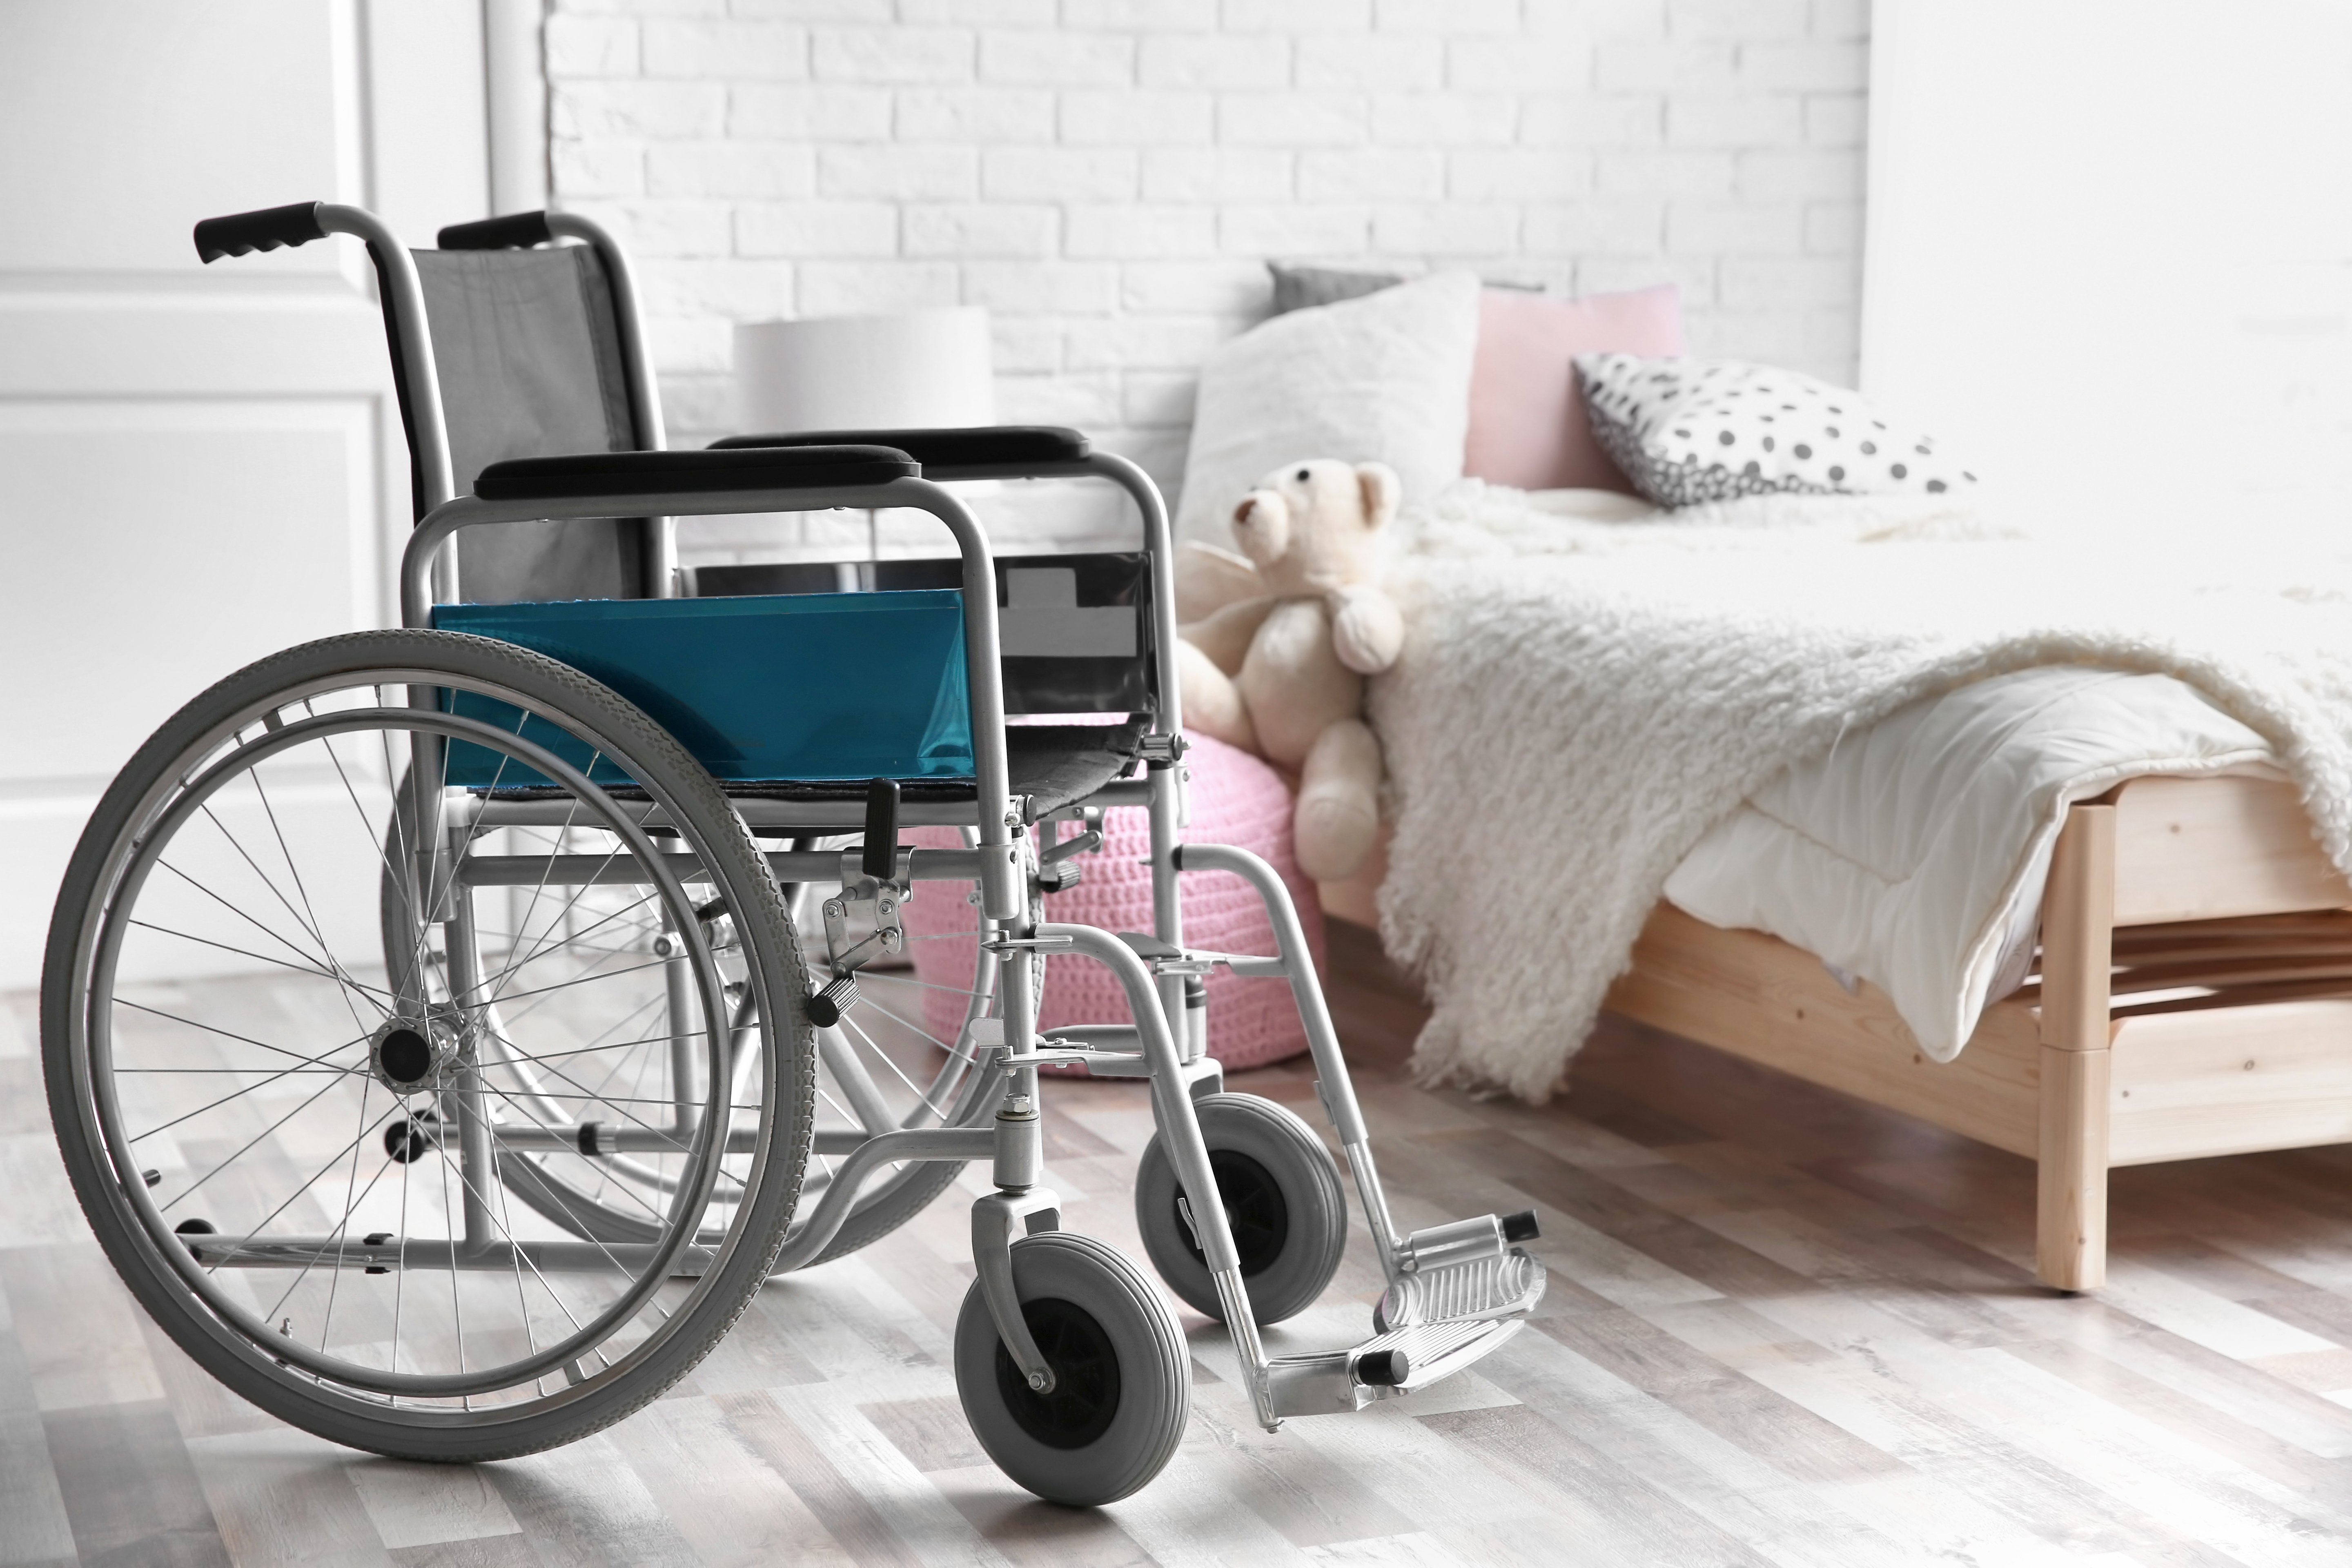 Picture of empty wheelchair next to a bed. | Source: Shutterstock